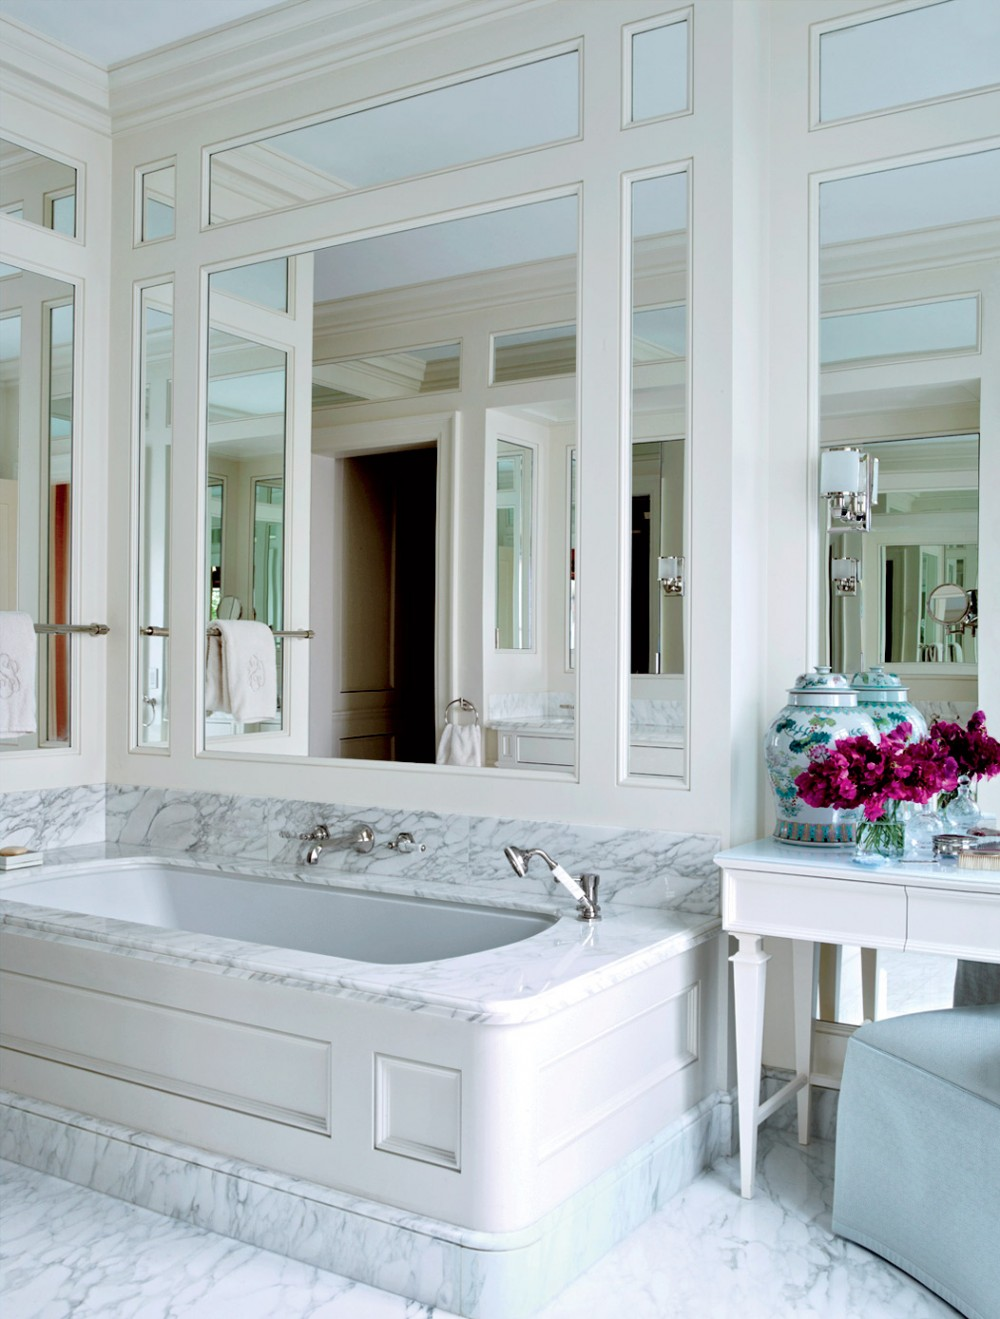 mirrored walls marble bathroom bathtub ideas luxury spa like better decorating bible blog